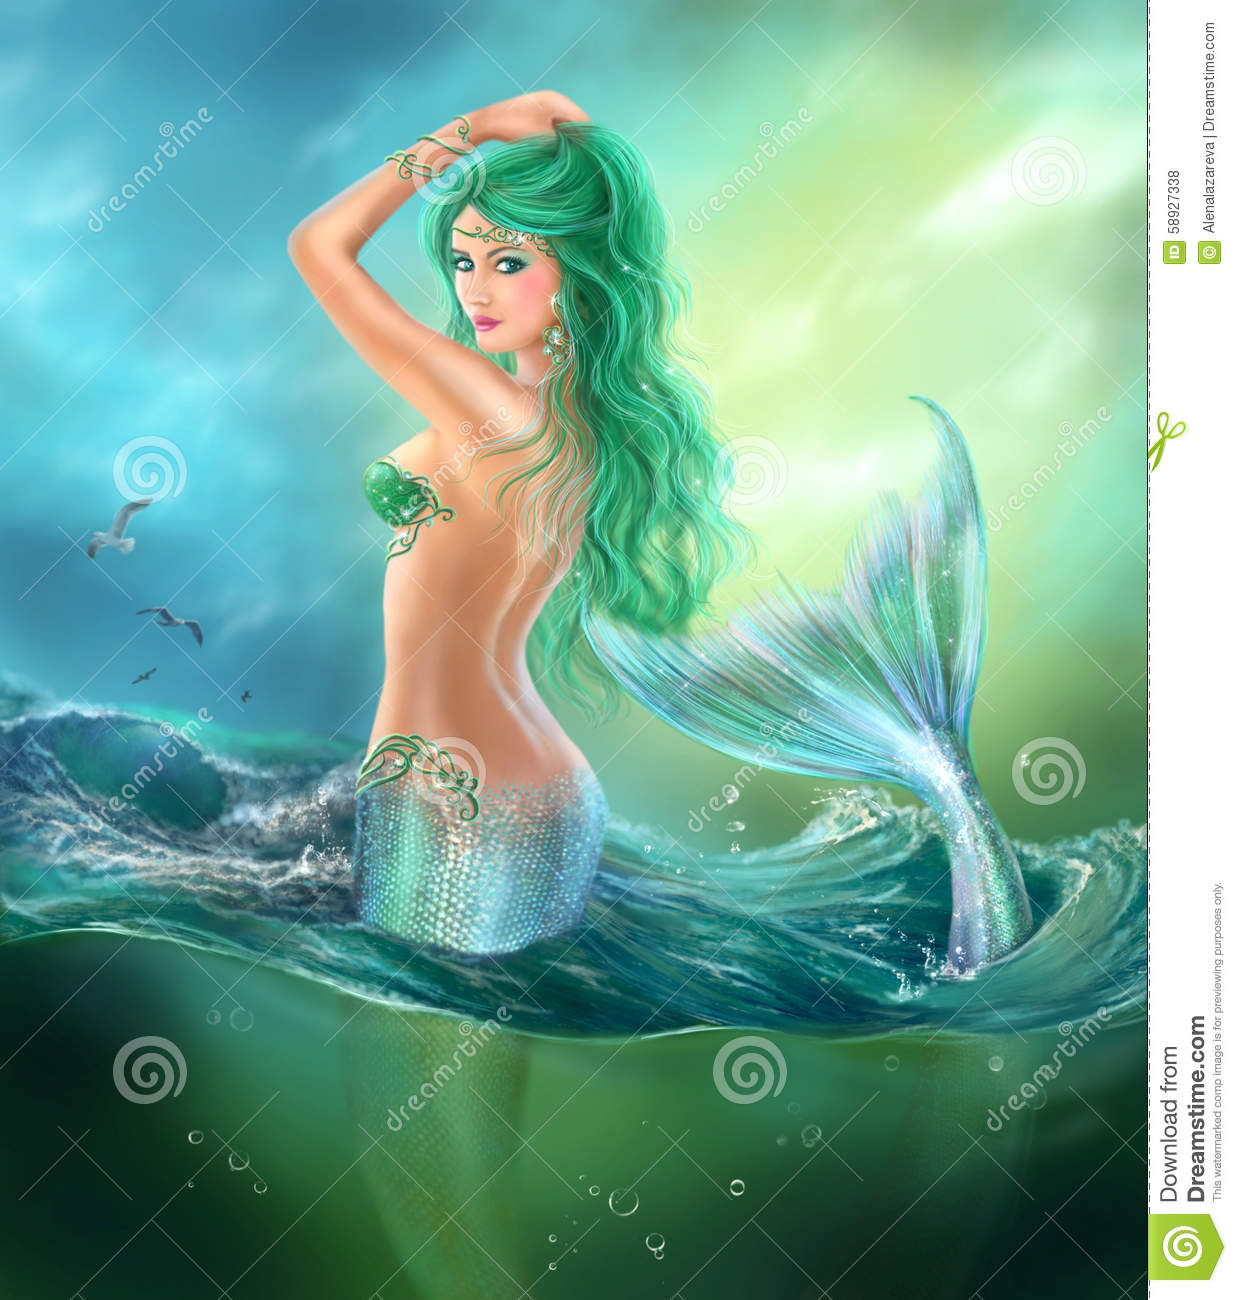 Beautiful Woman Mermaid Fantasy At Ocean With Green Hair Lilies